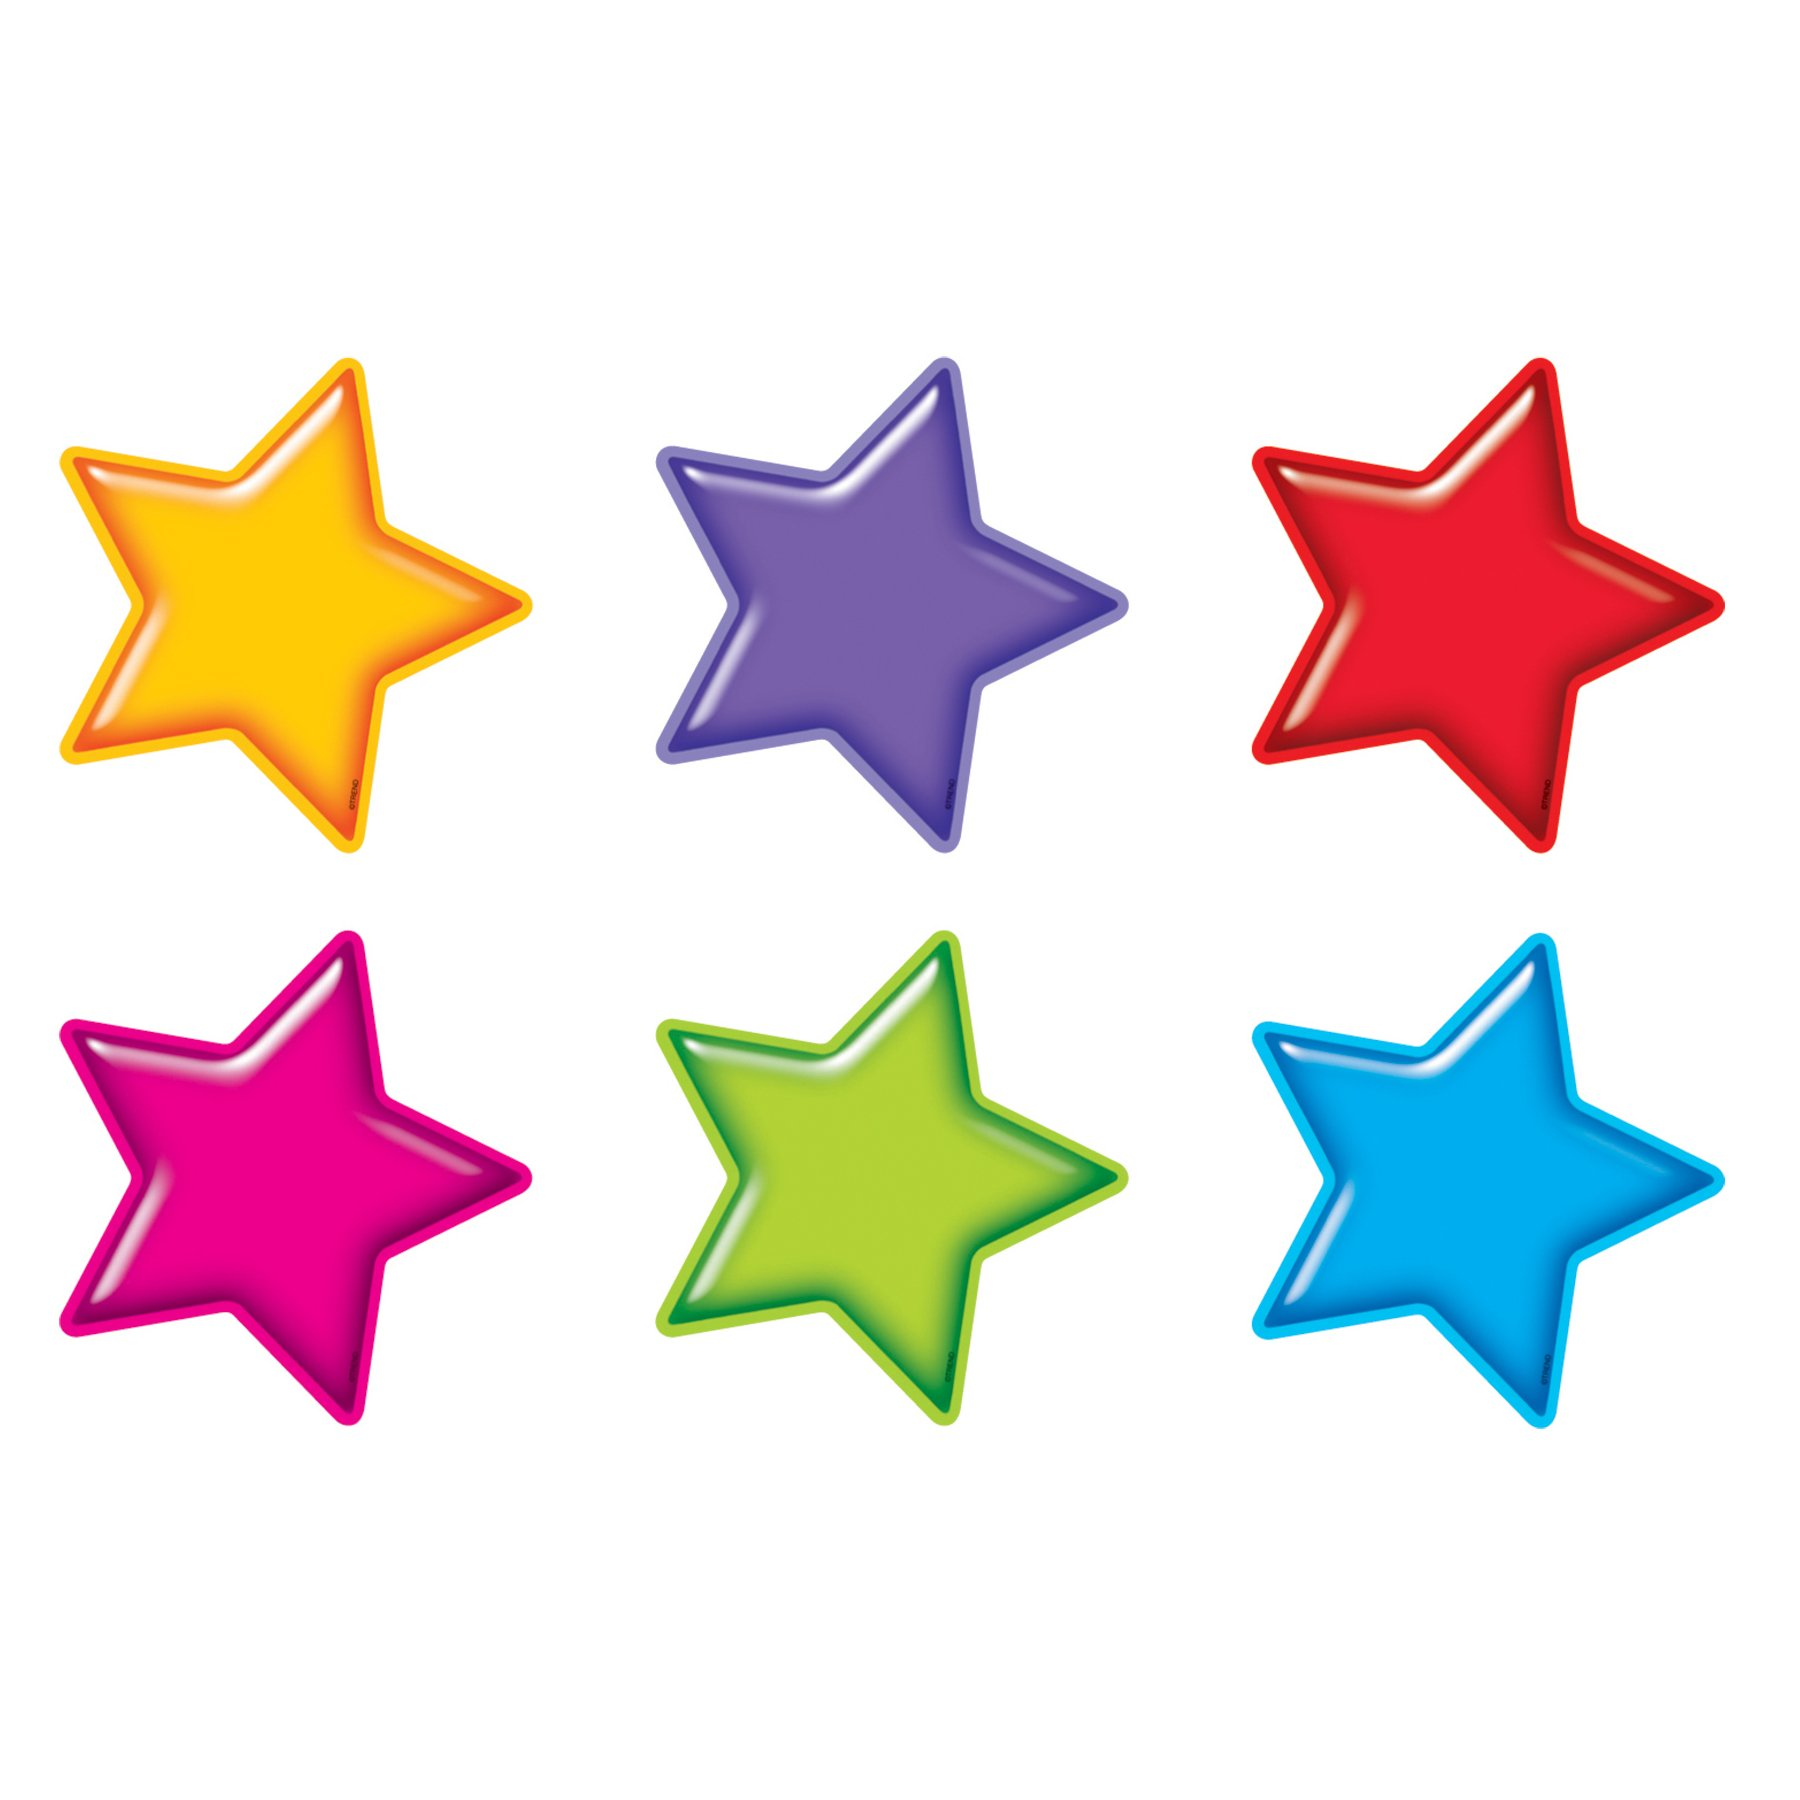 TREND enterprises, Inc. T-10968BN Gumdrop Stars Classic Accents Variety Pack, 36 Per Pack, 6 Packs by TREND Enterprises